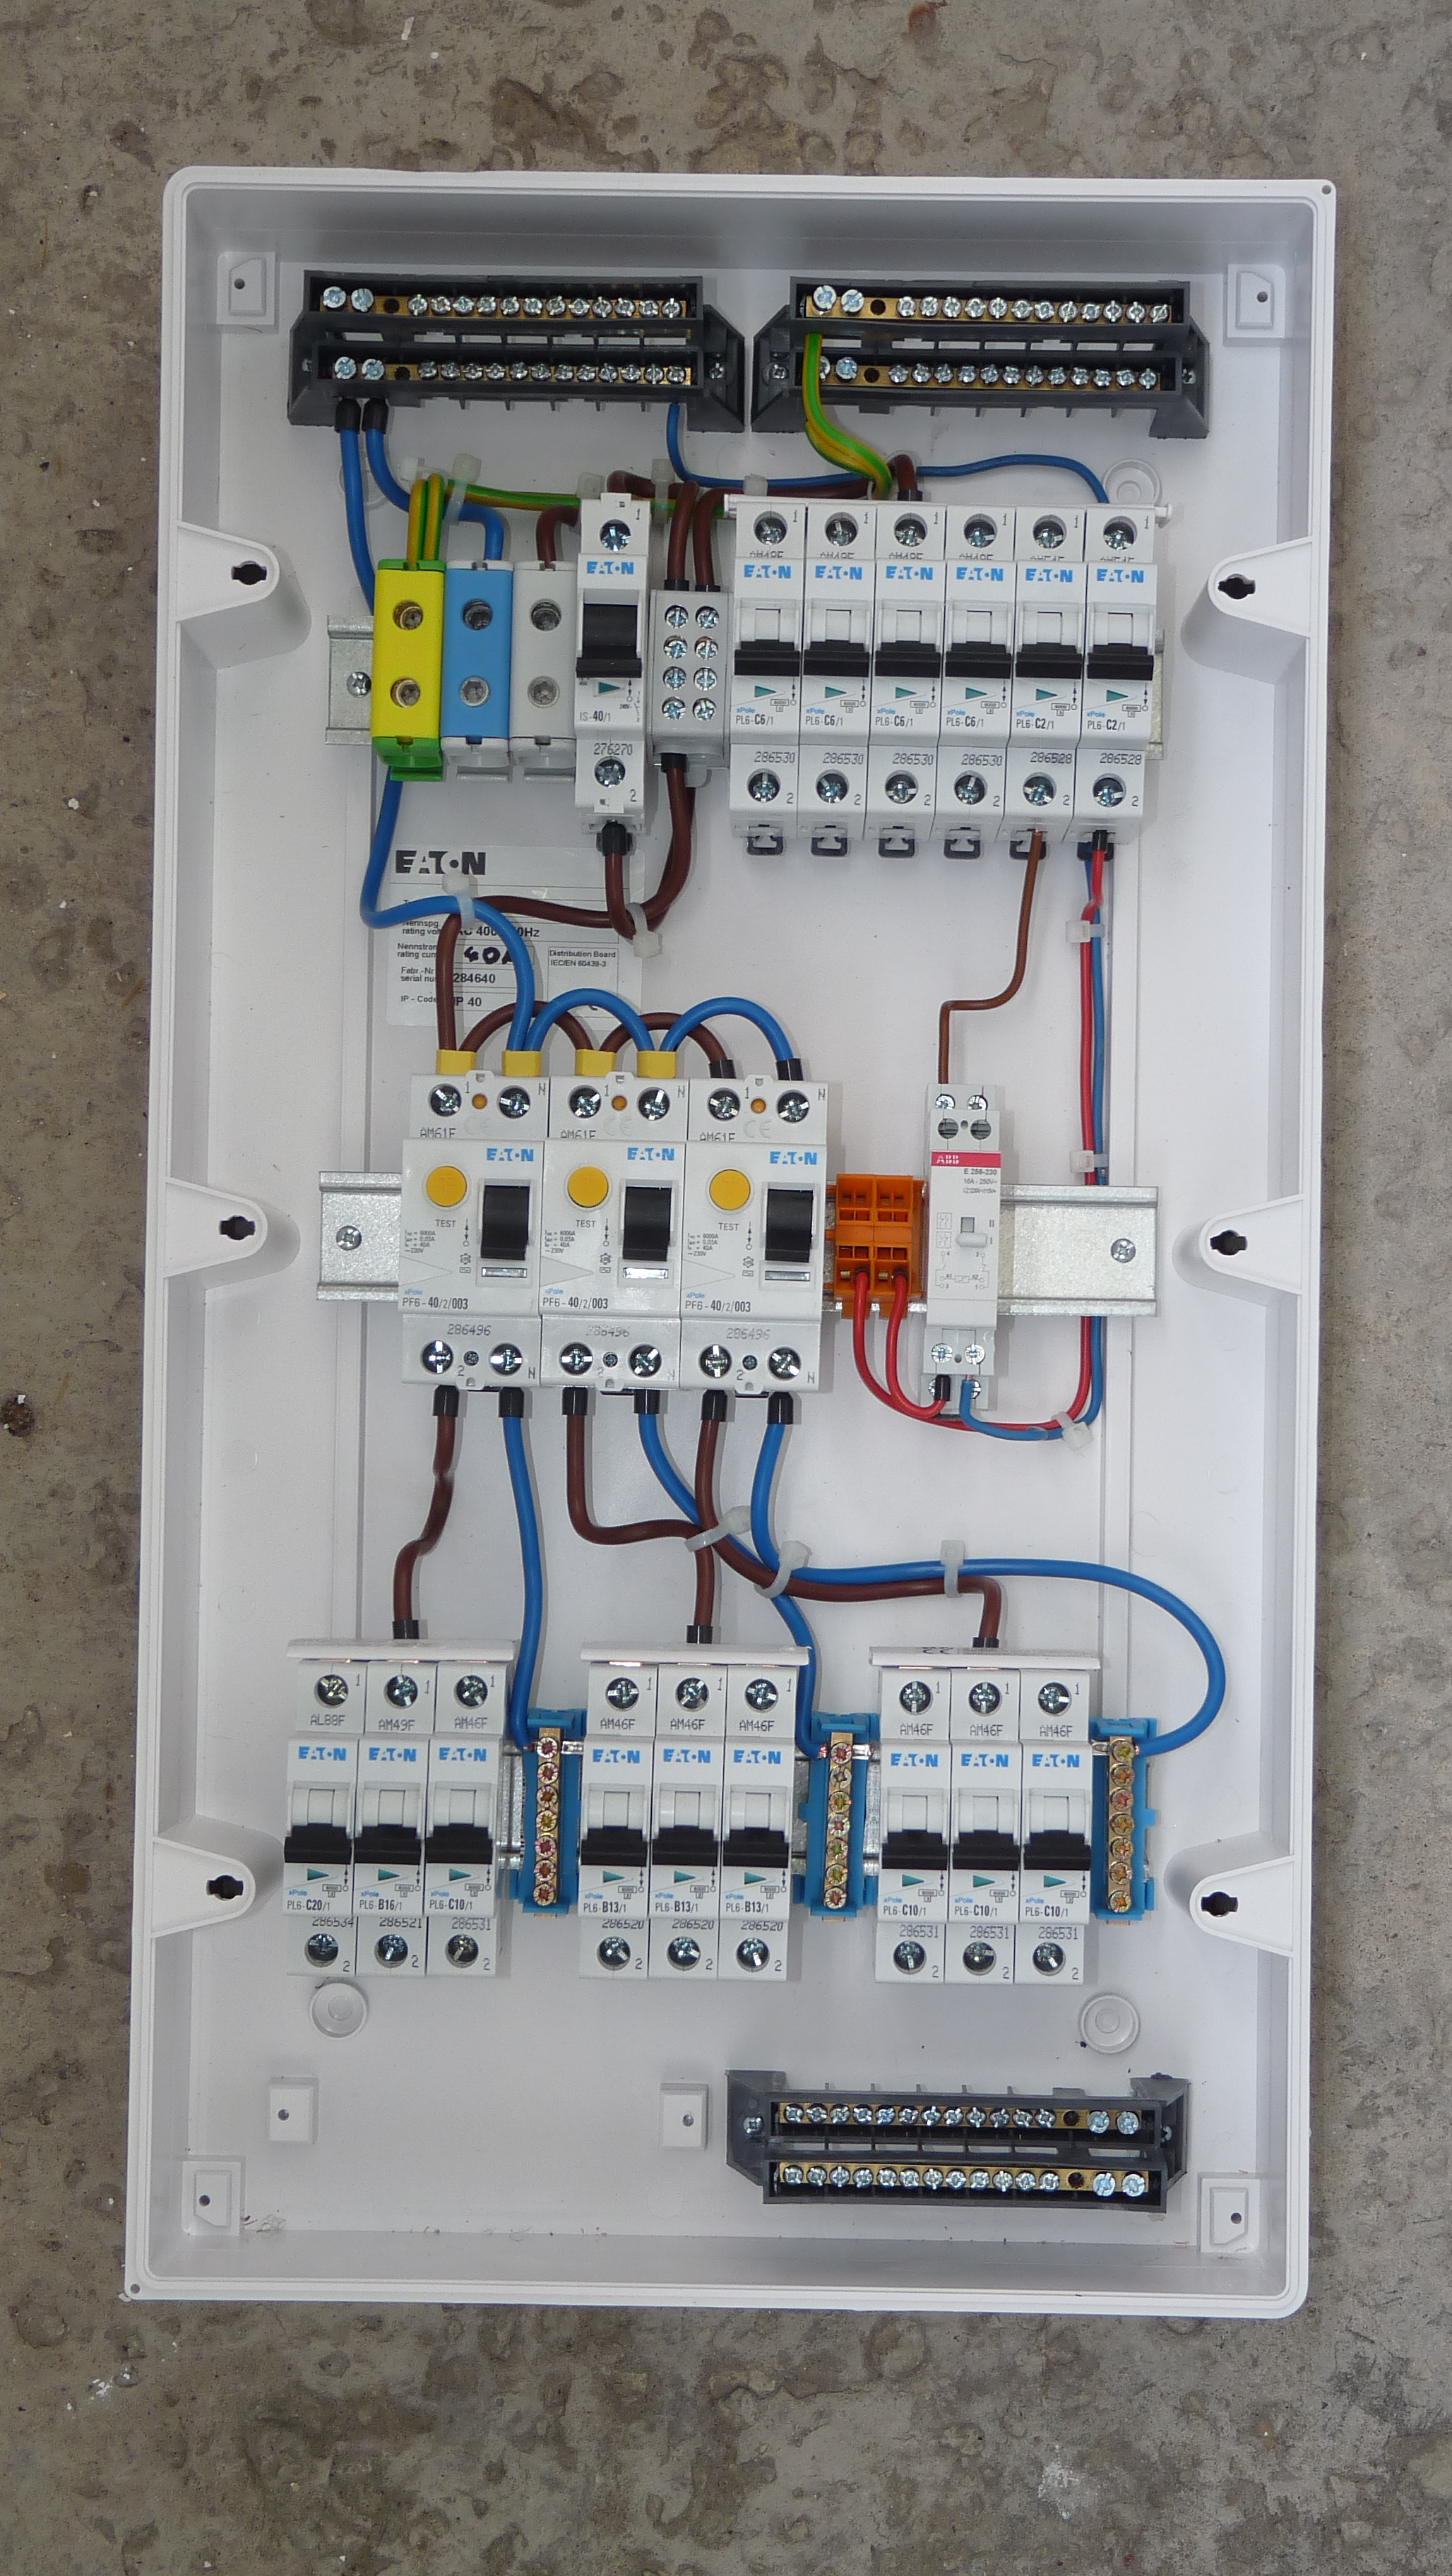 Buss Fuse Box Circuit Builder Data Wiring Diagram Solar System On Electrical Breaker For House Schema